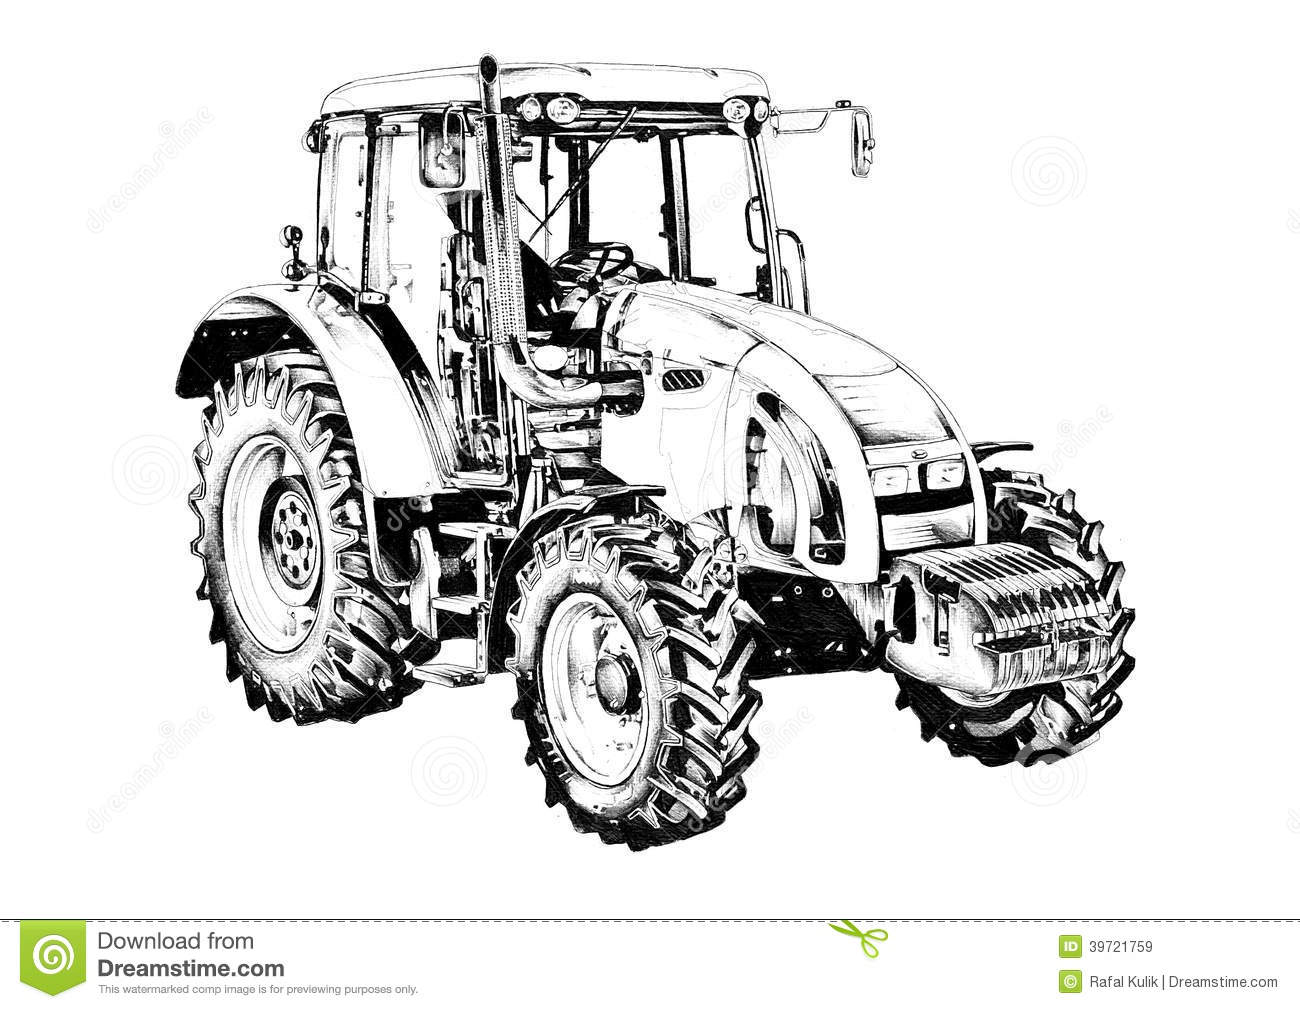 Royalty Free Stock Images Agricultural Tractor Illustration Art Drawing Image39721759